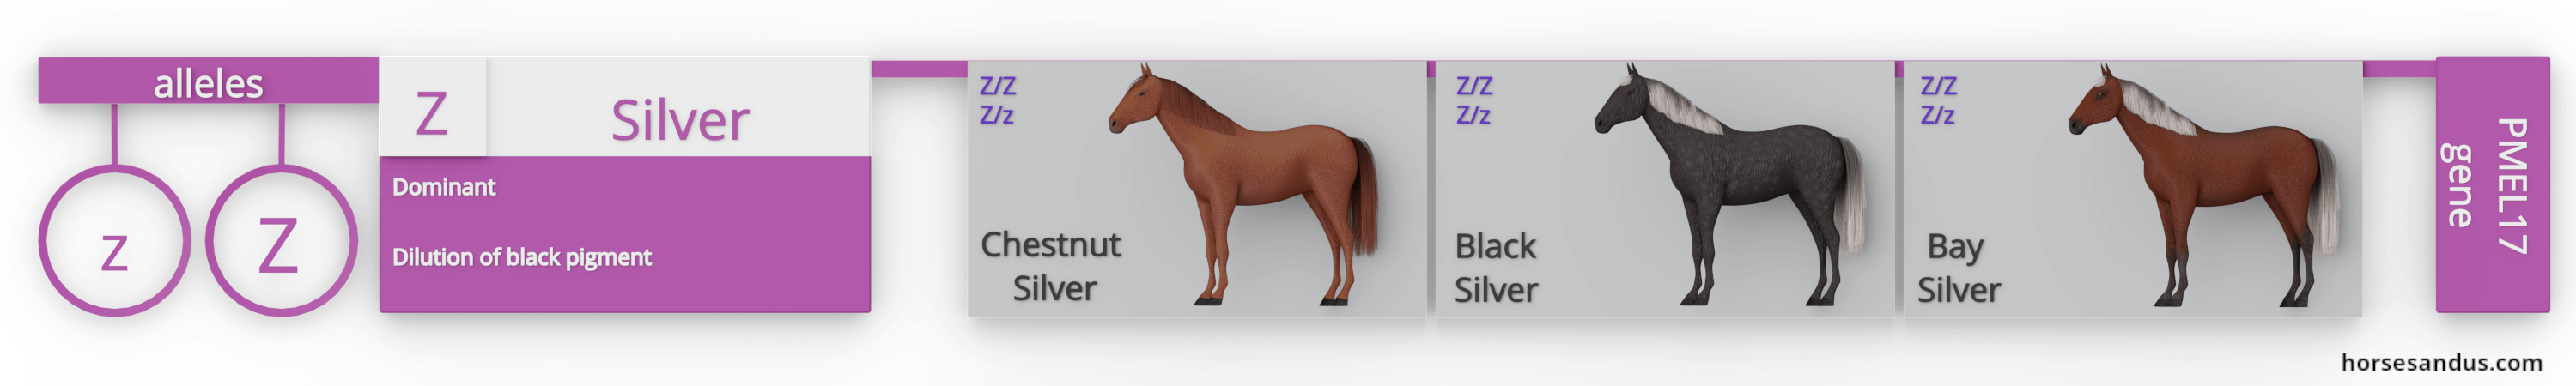 Equine Silver dilution gene